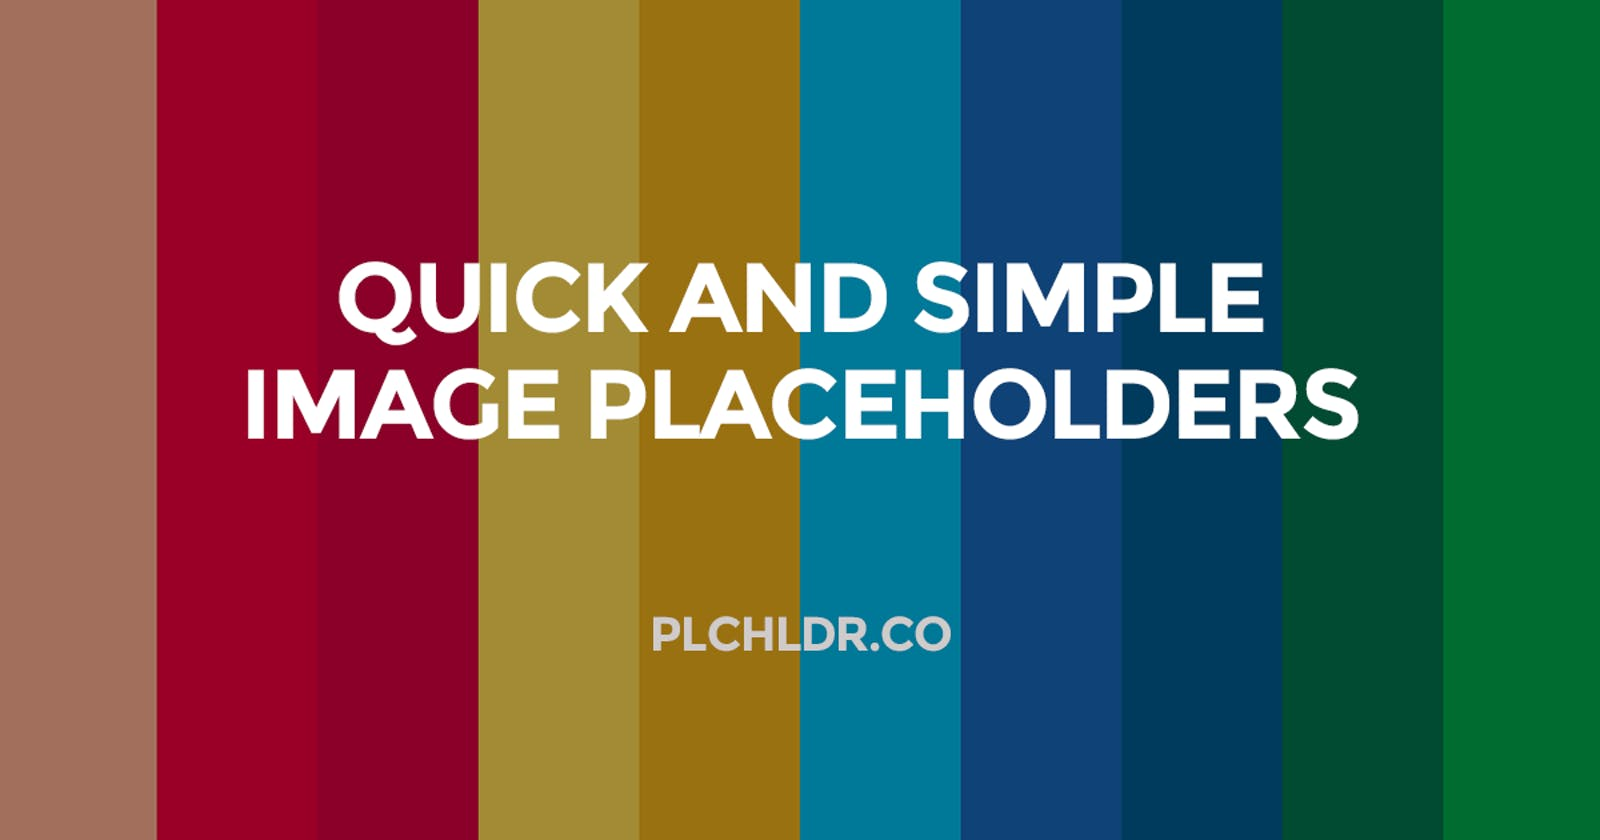 Quick and simple image placeholder